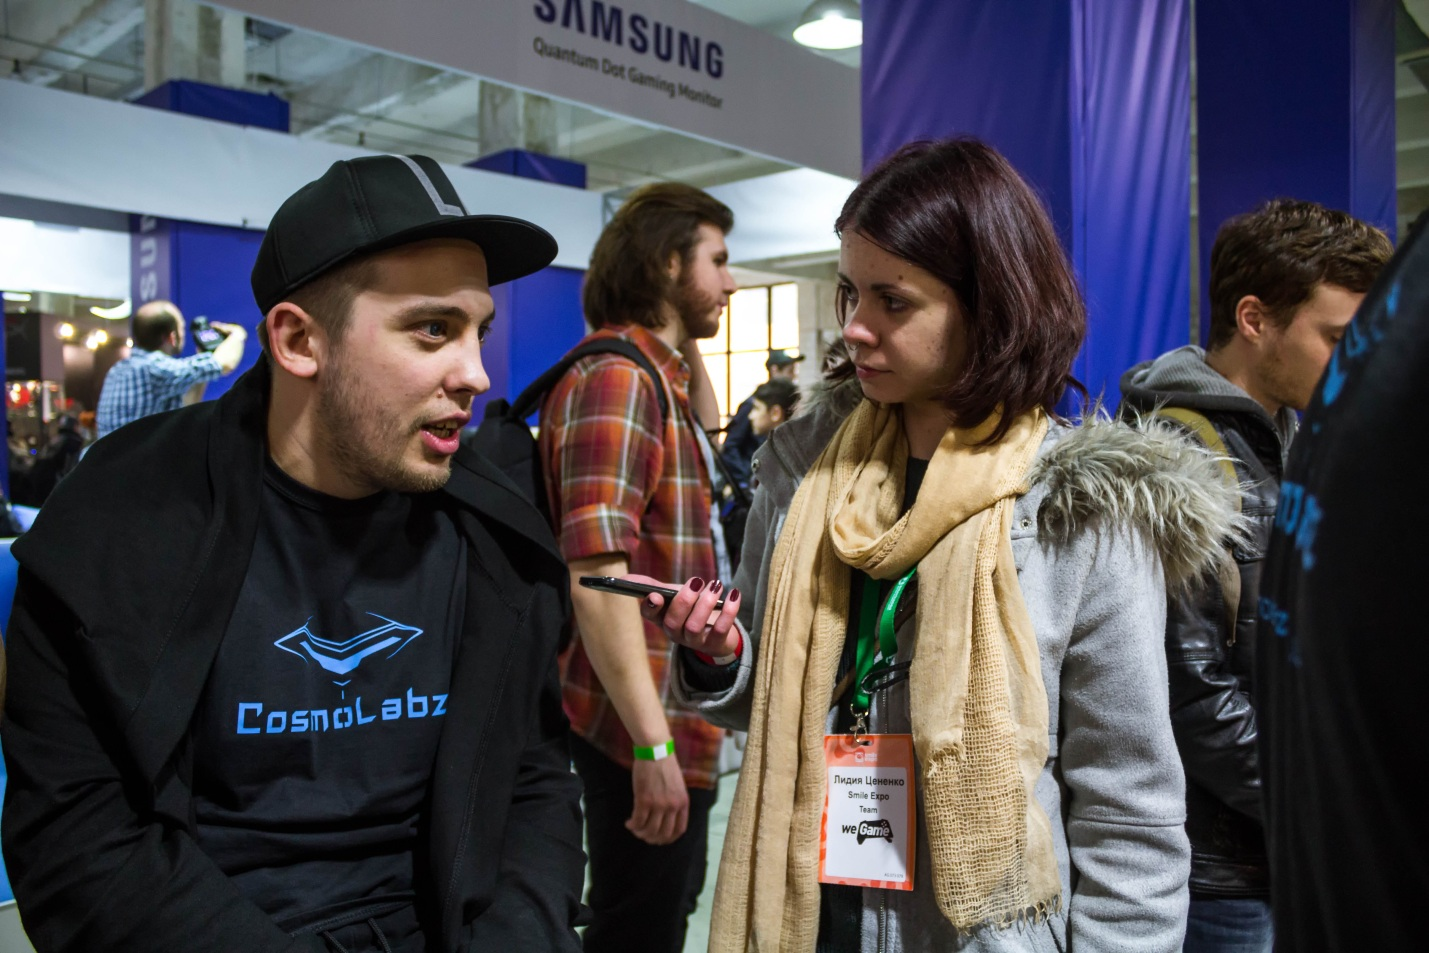 Interview with a director of COSMOLABZ, an exhibiting company at WEGAME 3.0